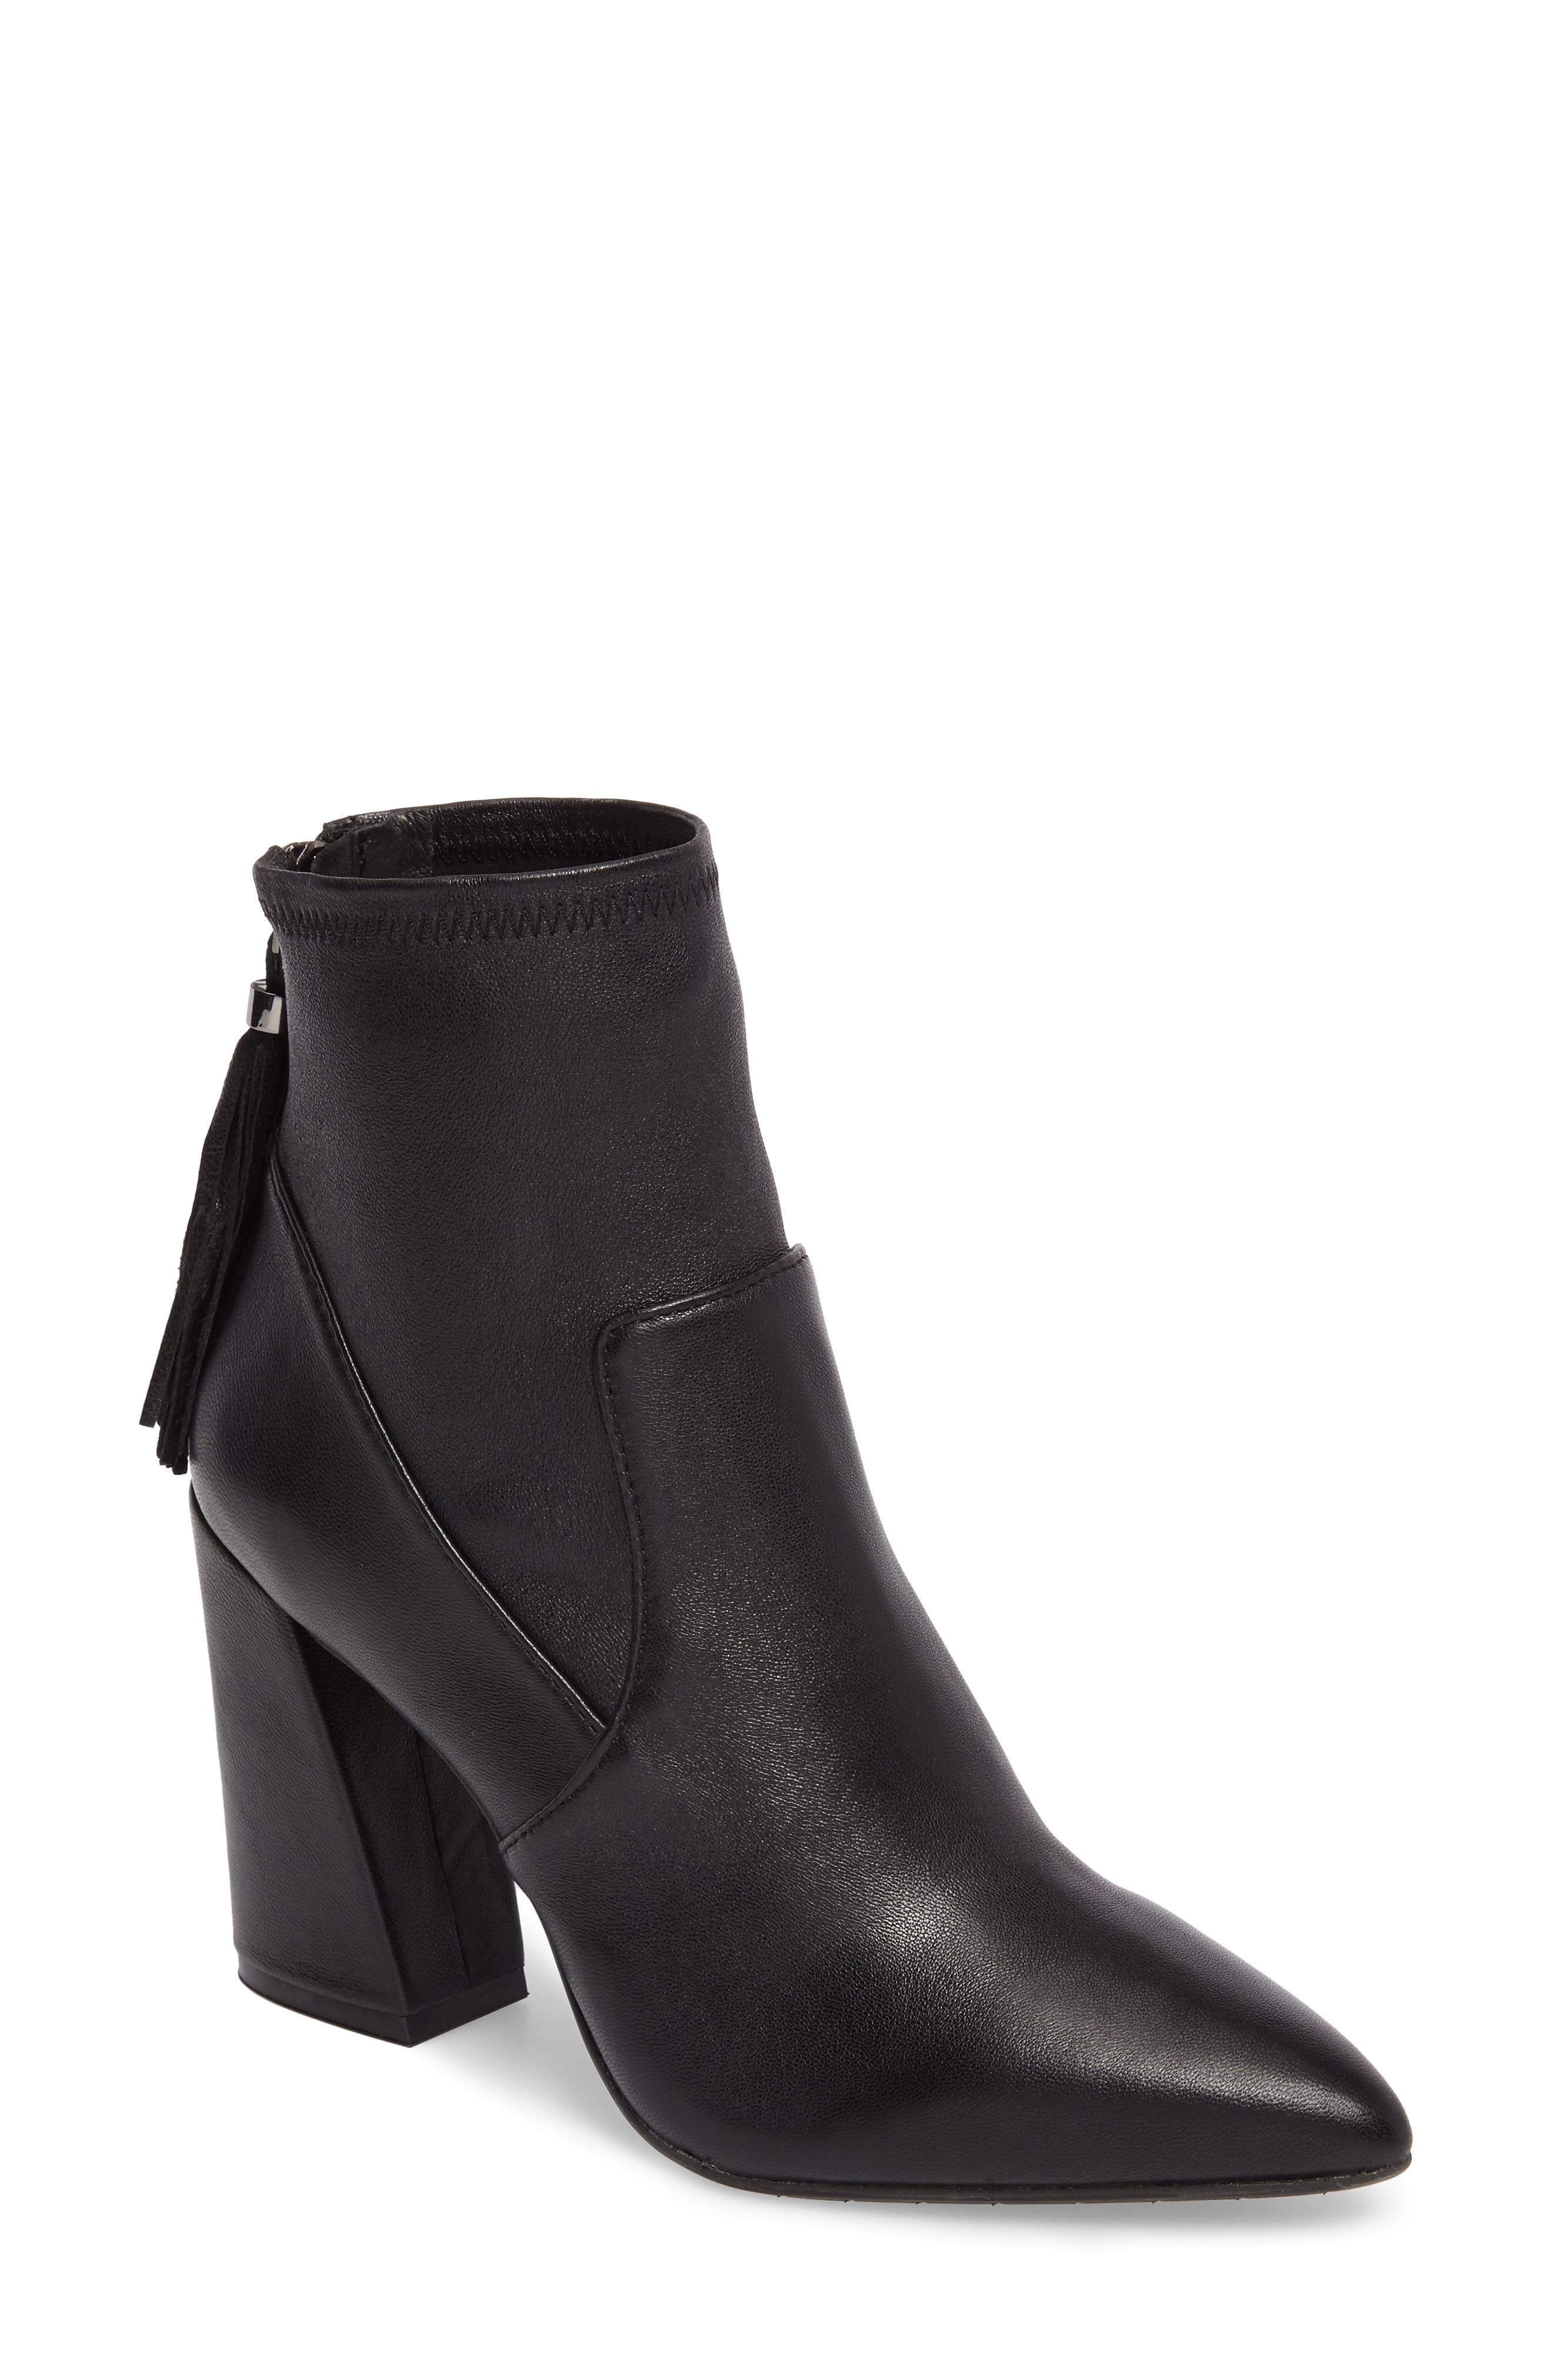 Gracelyn Pointy Toe Bootie,                         Main,                         color, 001